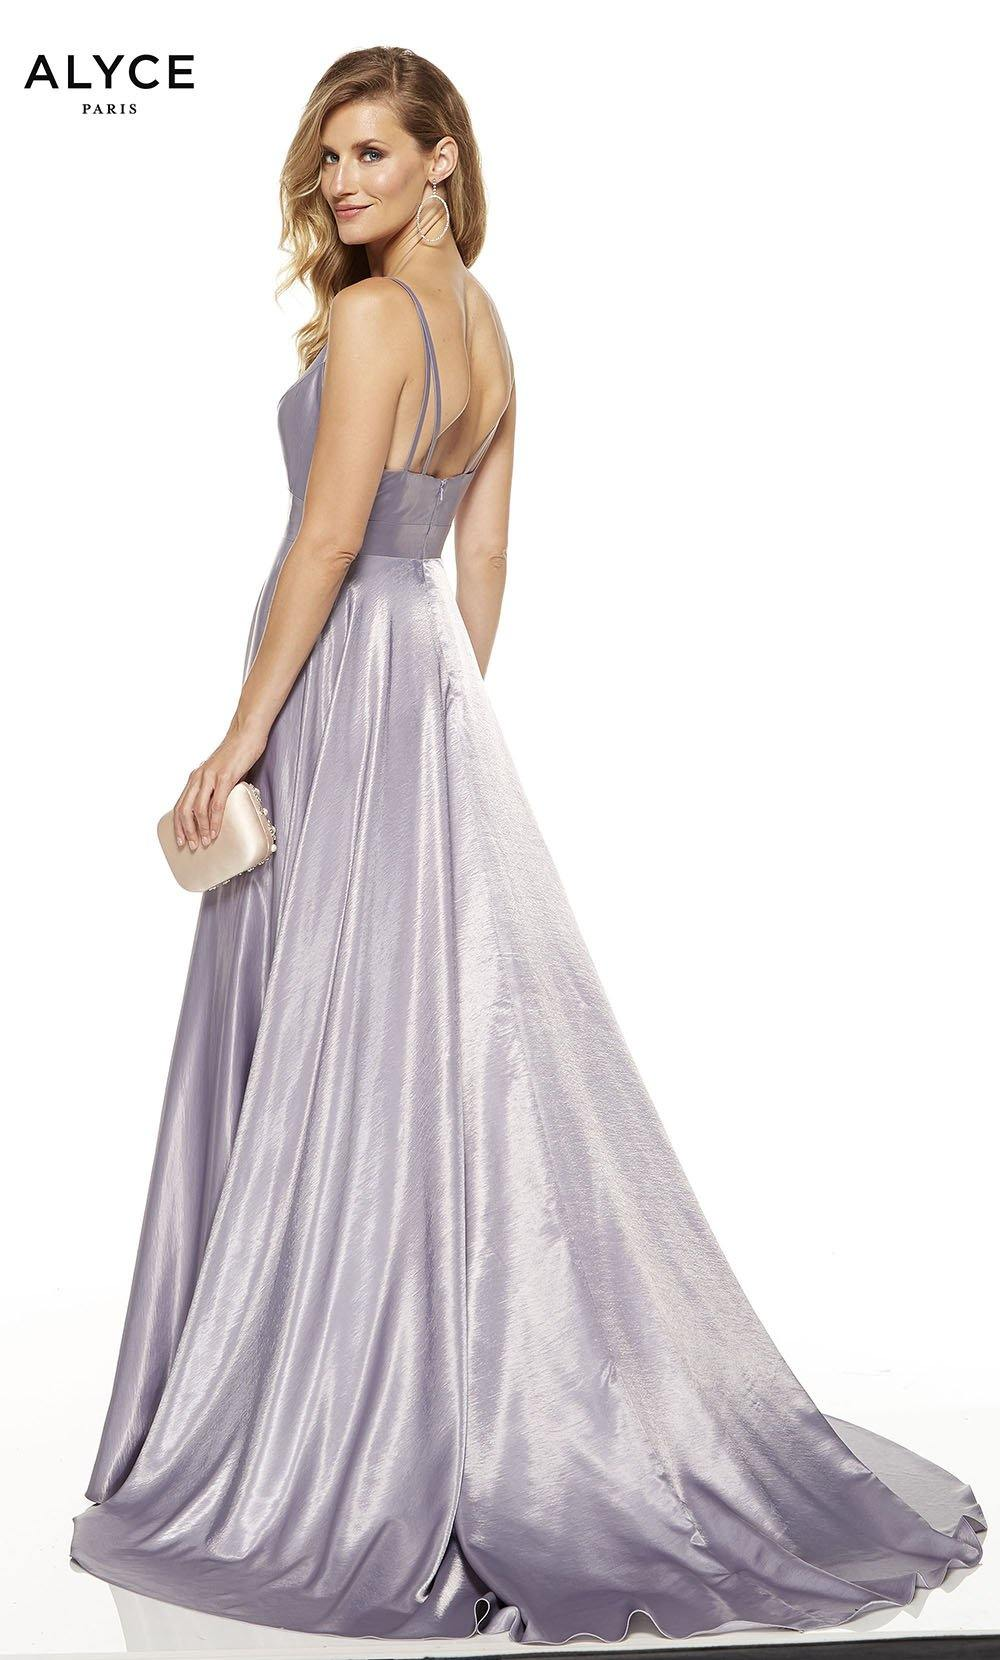 Lilac-Grey formal dress with an enclosed back